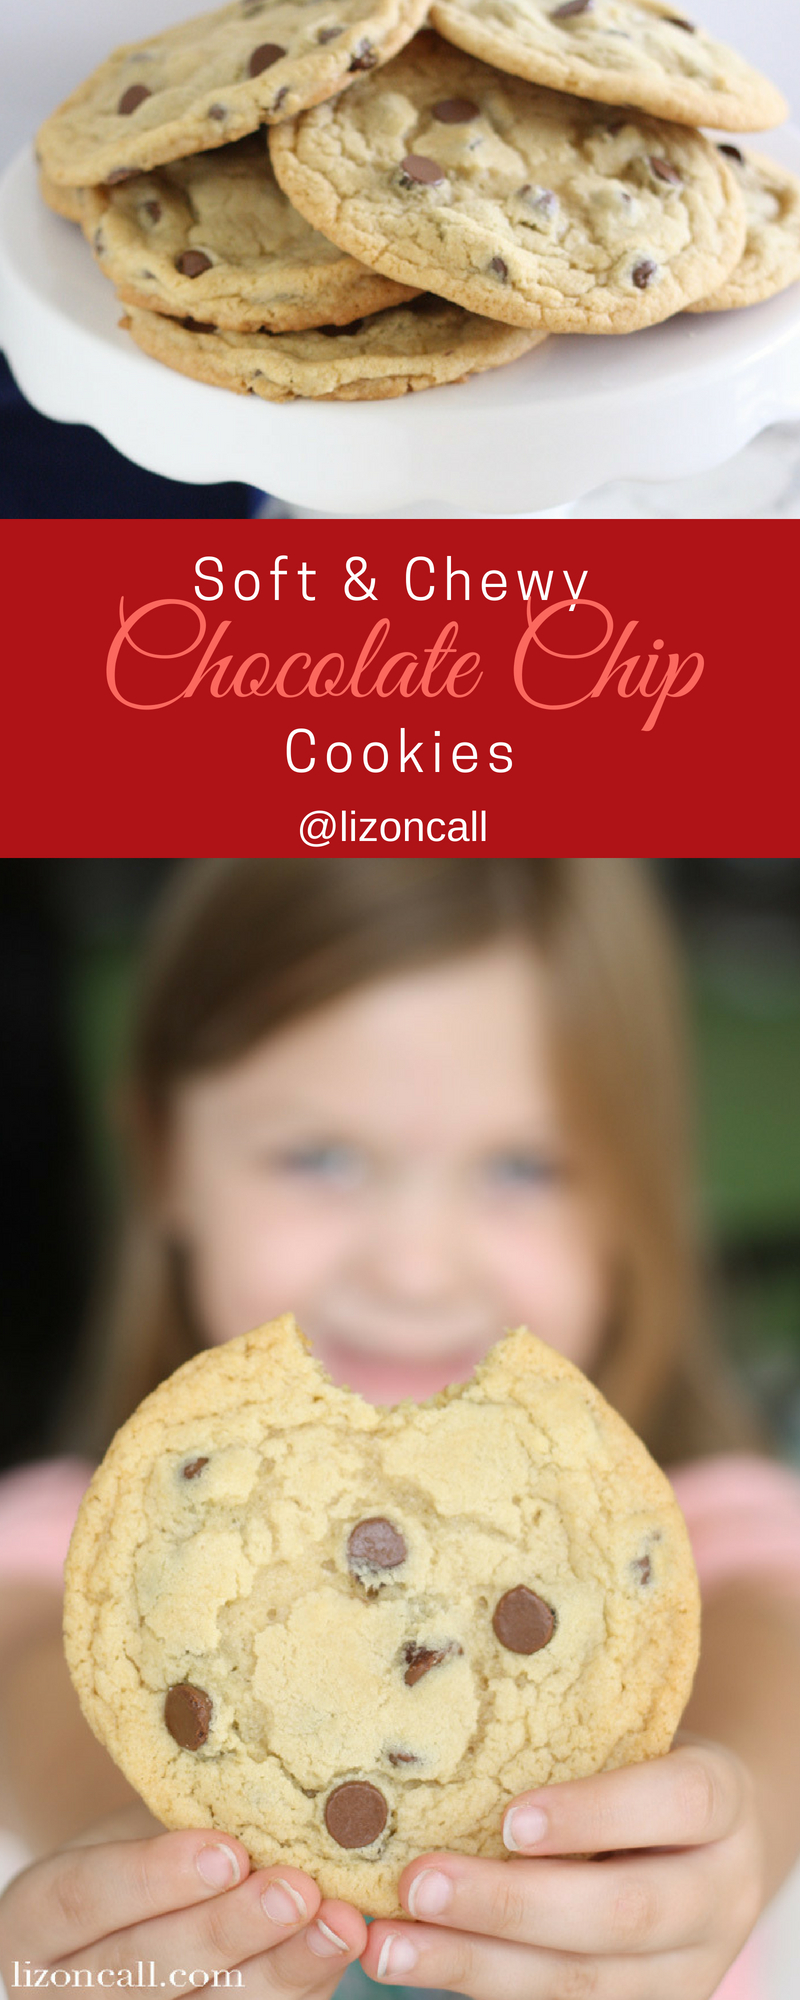 These chocolate chip cookies are going to be your go to cookie.  Family, friends, neighbors and even teachers are going to be requesting you make these all the time. Best chocolate chip cookie recipe.